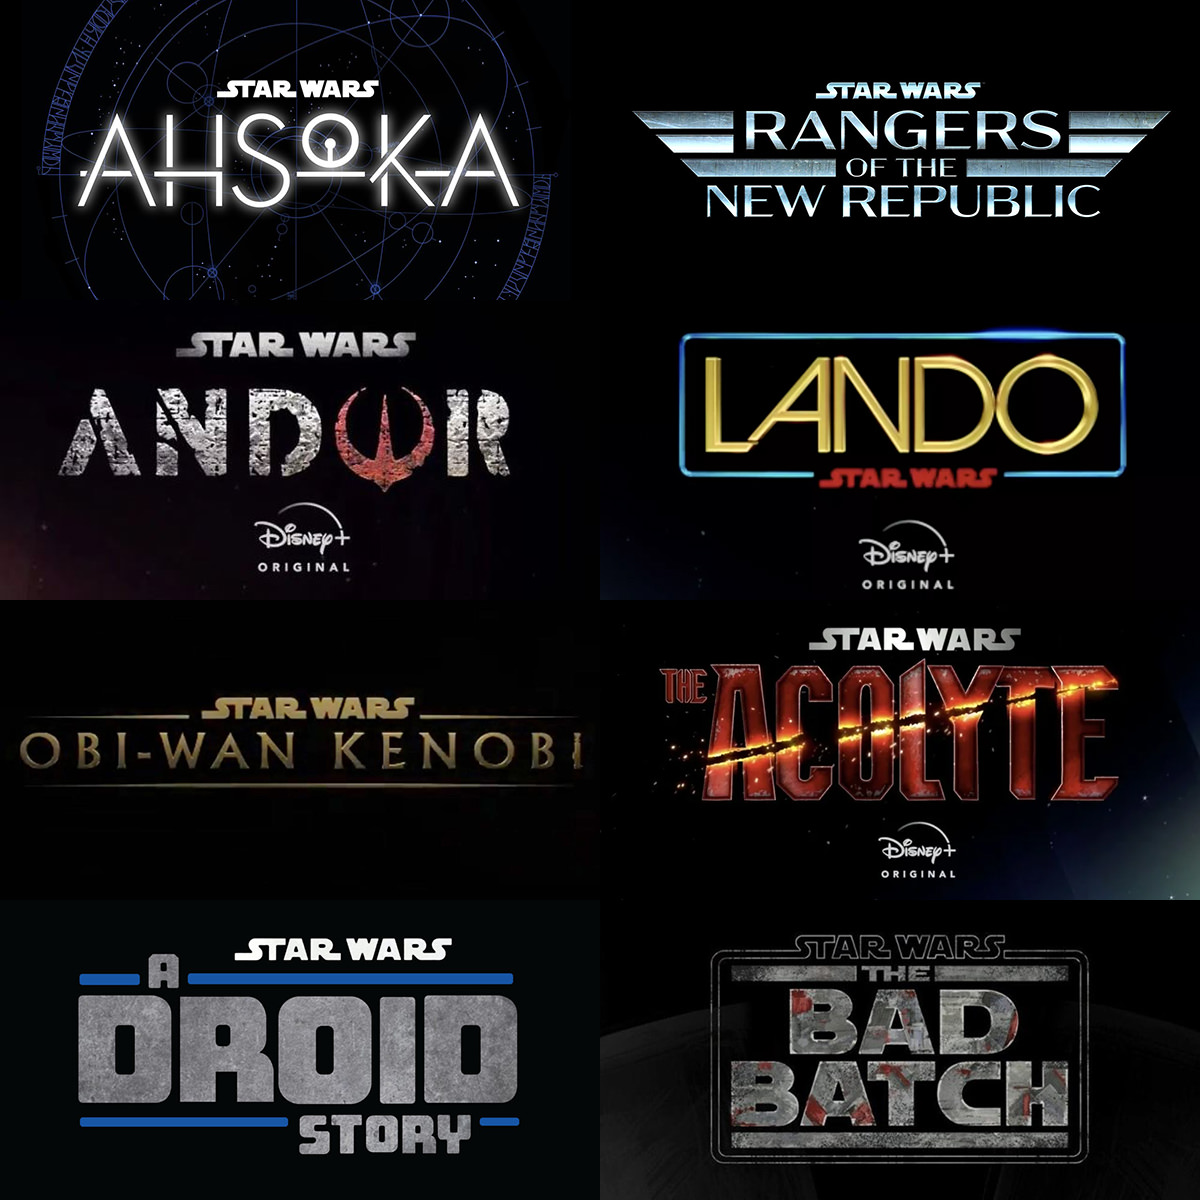 Star Wars Series Posters for Disney+